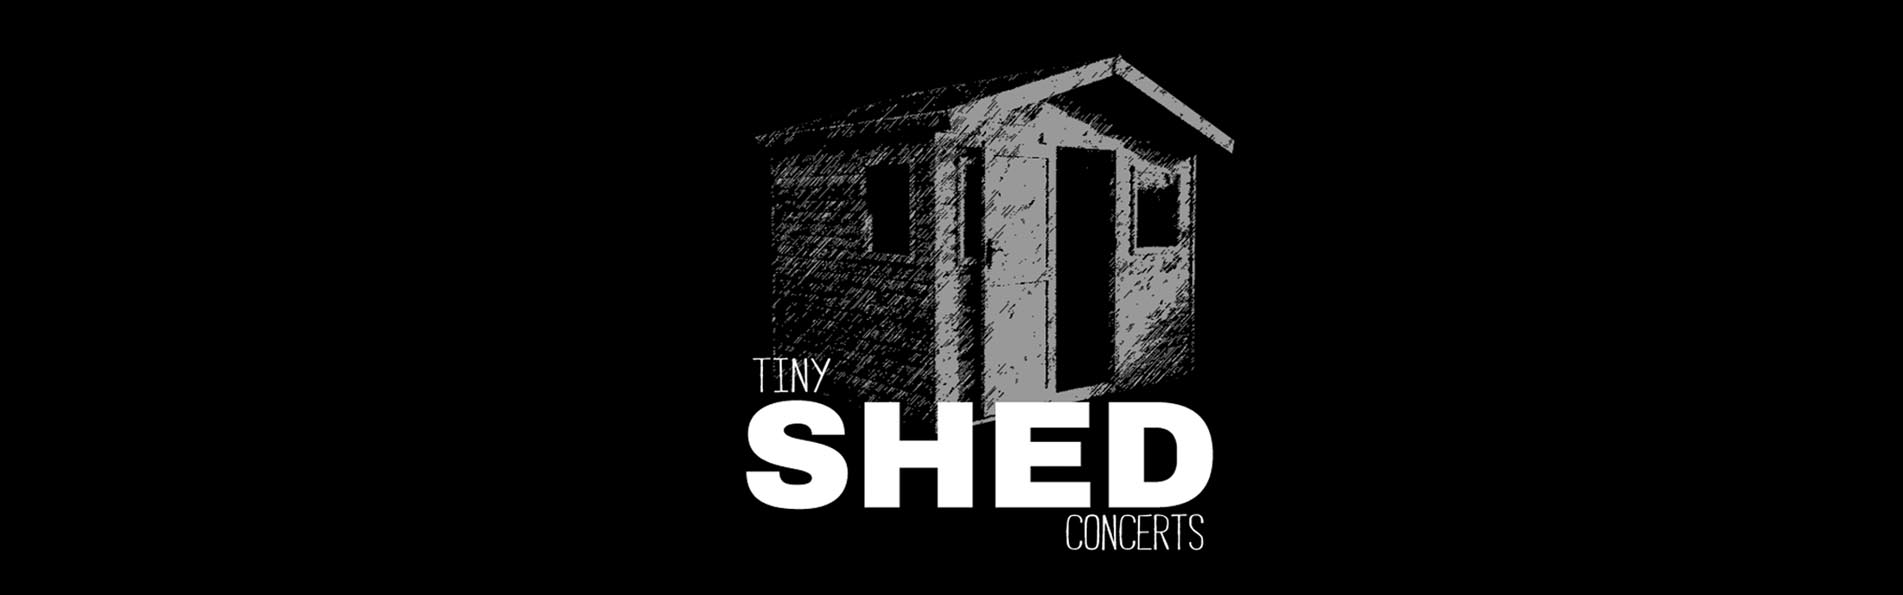 tiny shed concerts